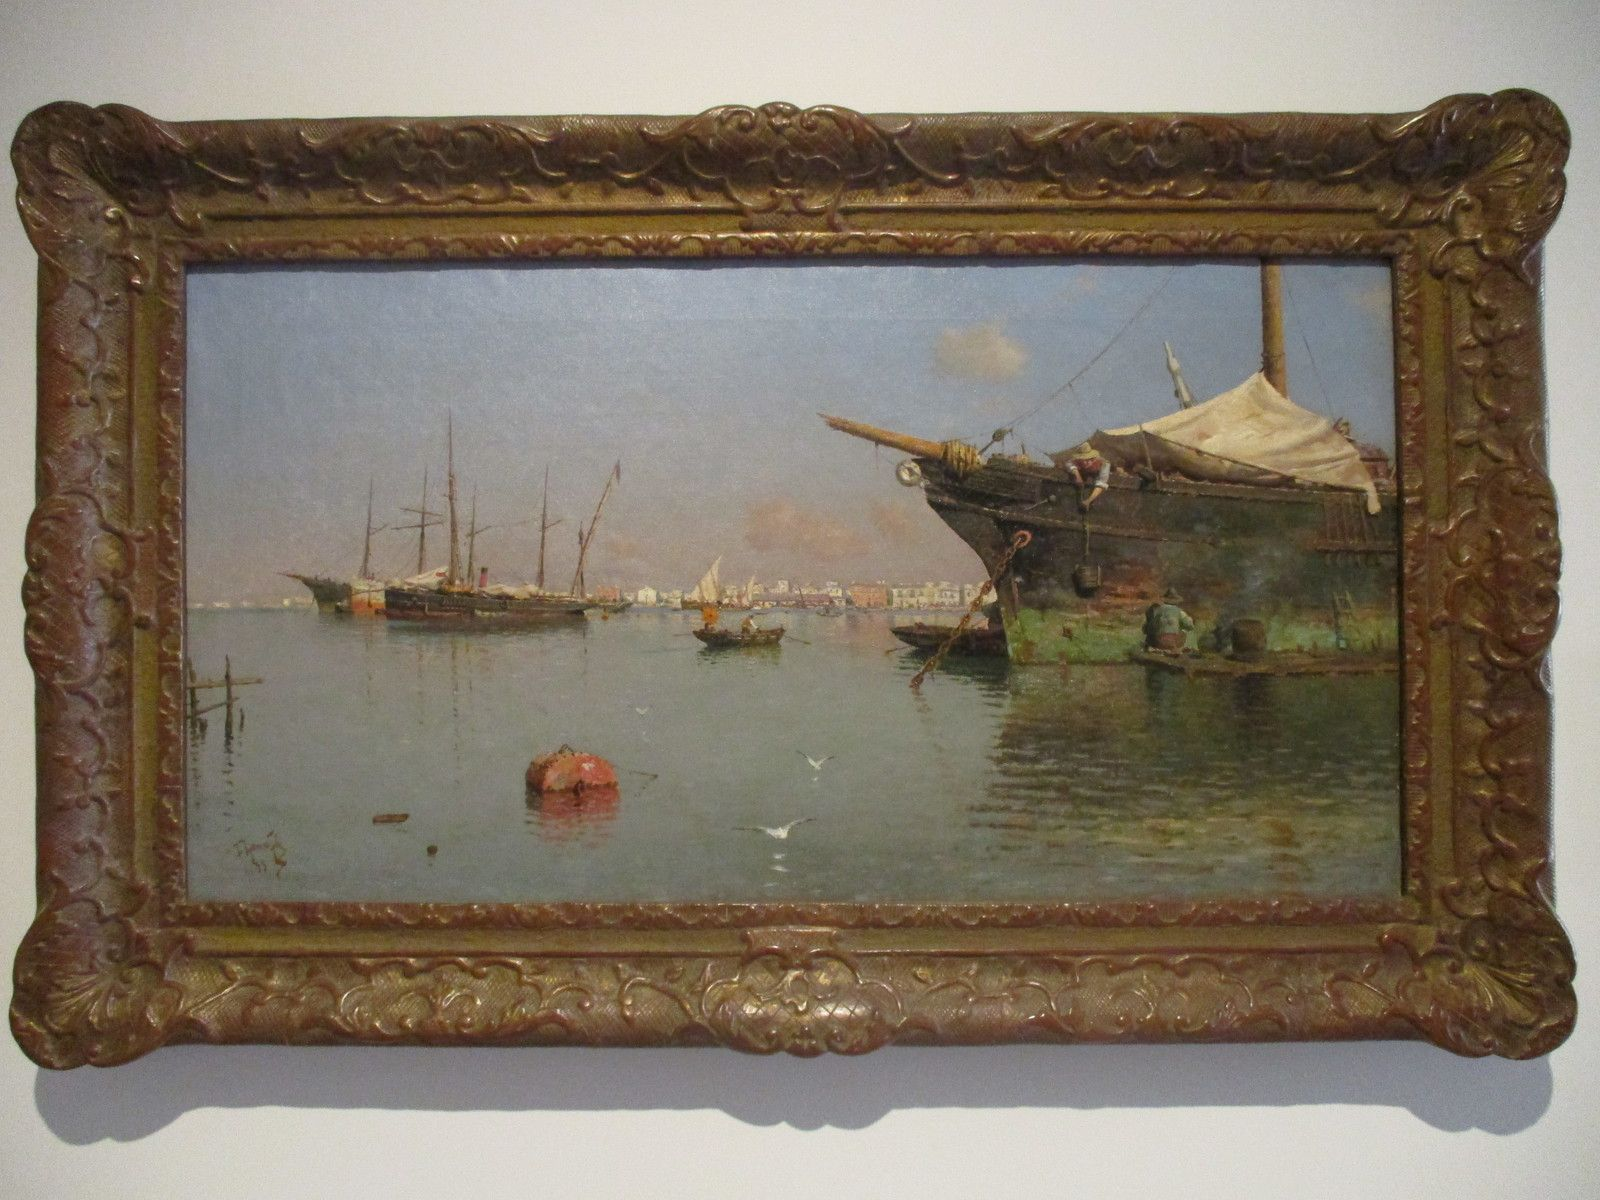 Port - Guillermo Gomez Gil, 1899